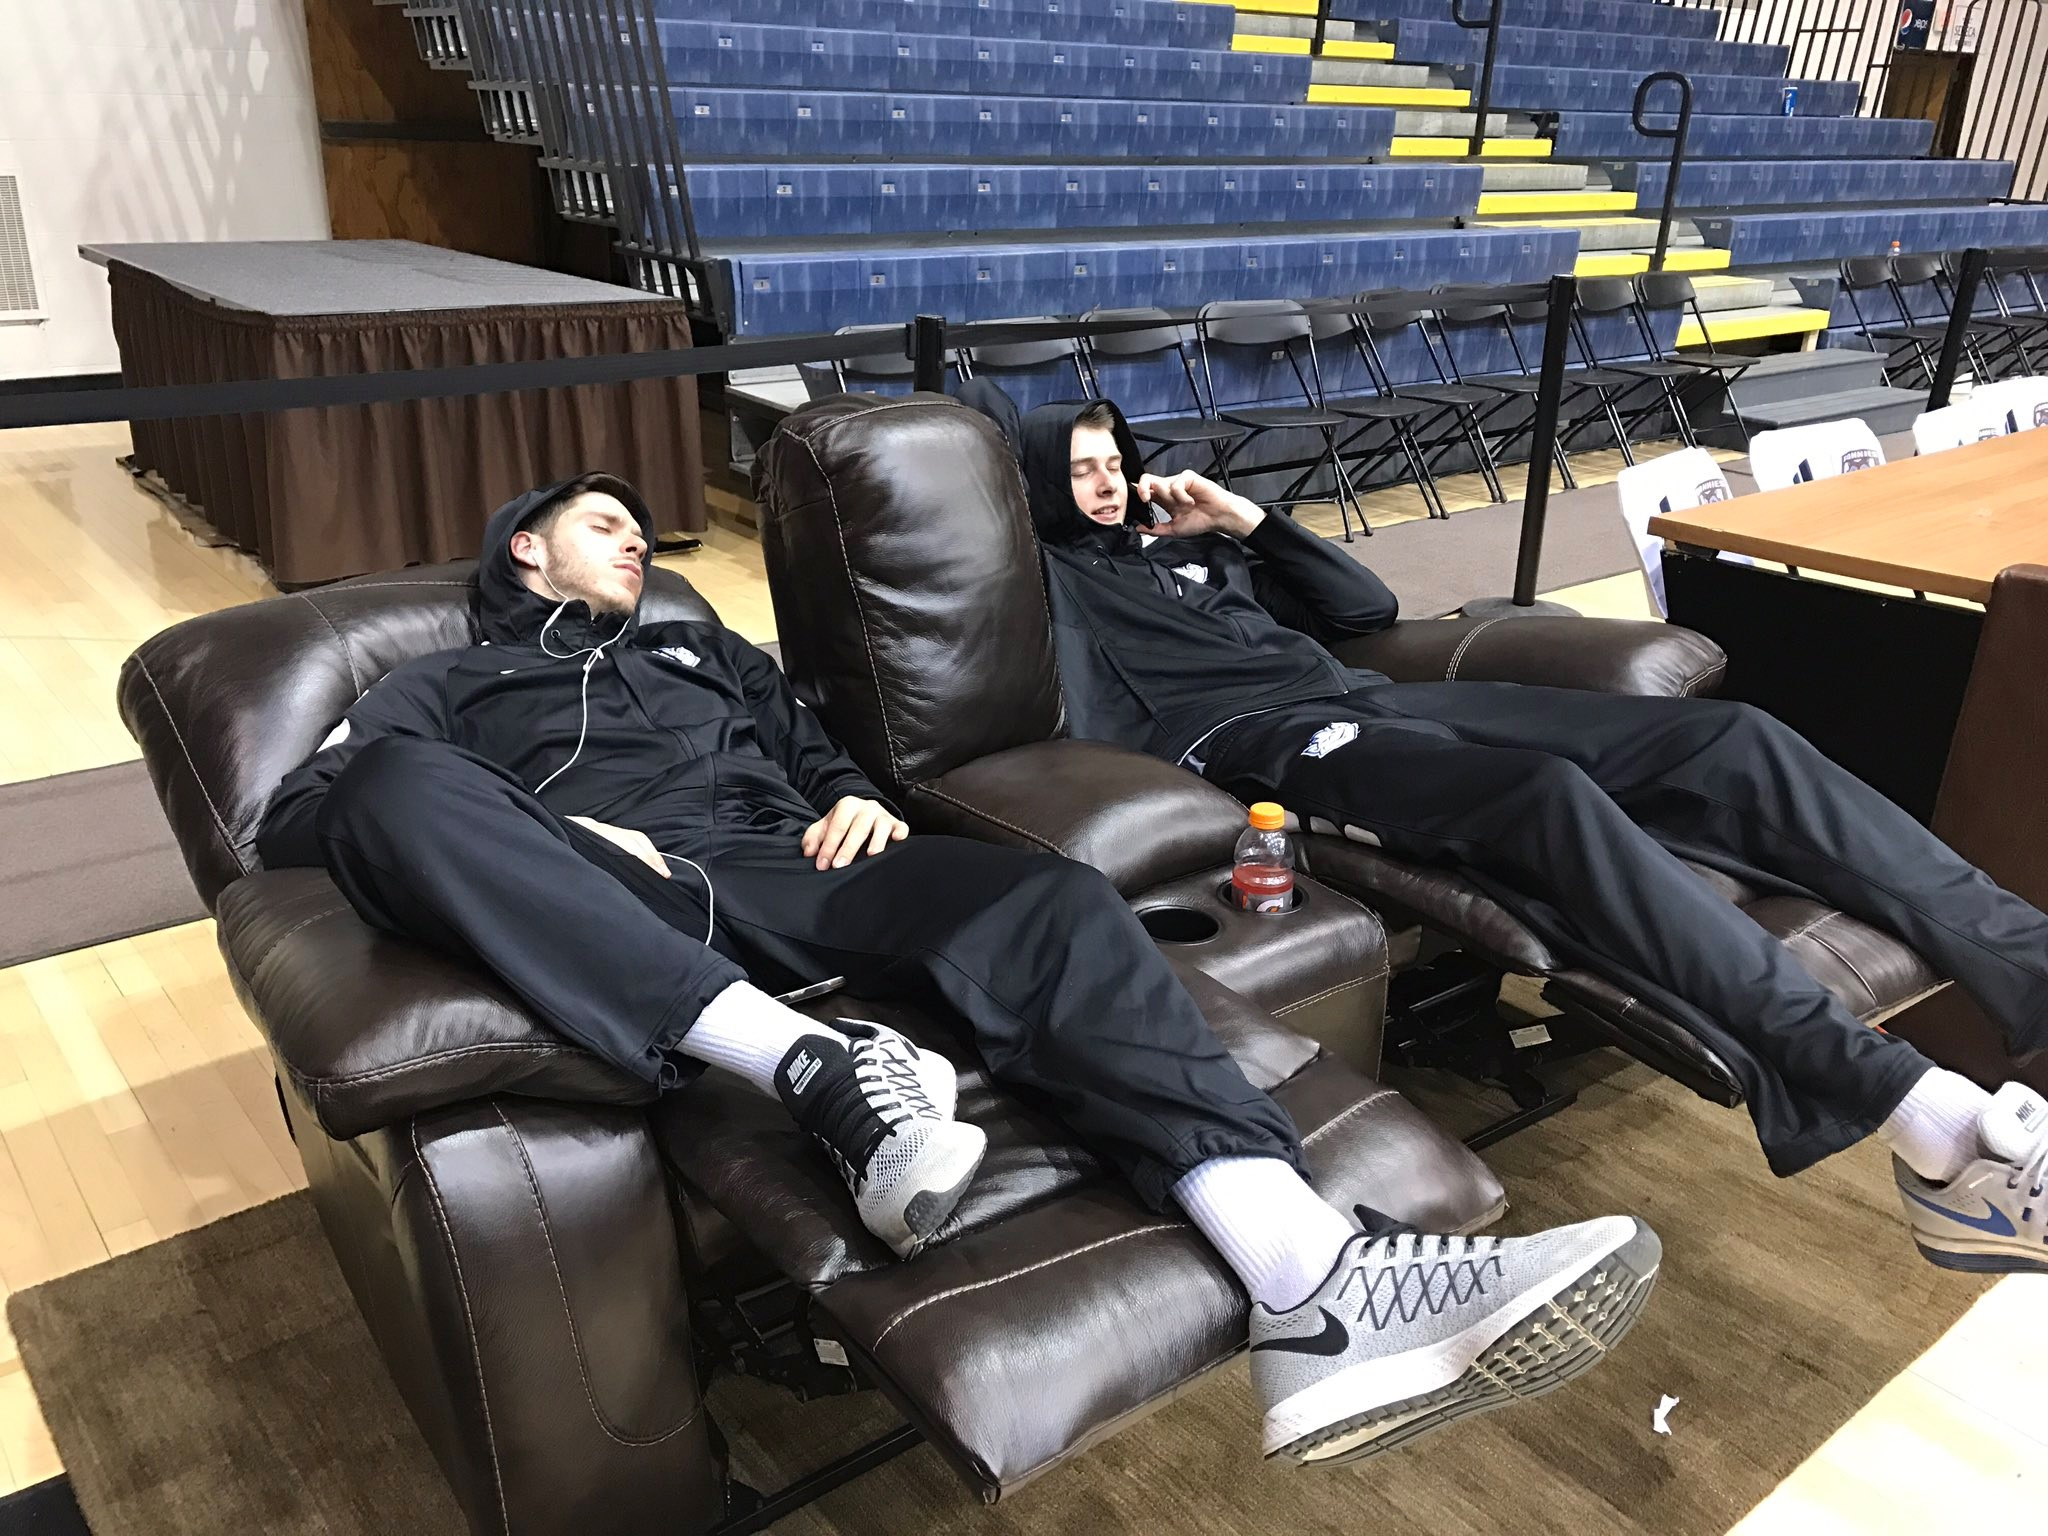 St. Louis University basketball players doze in the Reilly Center after their bus driver went AWOL Wednesday night. (Photo St. Louis University basketball)